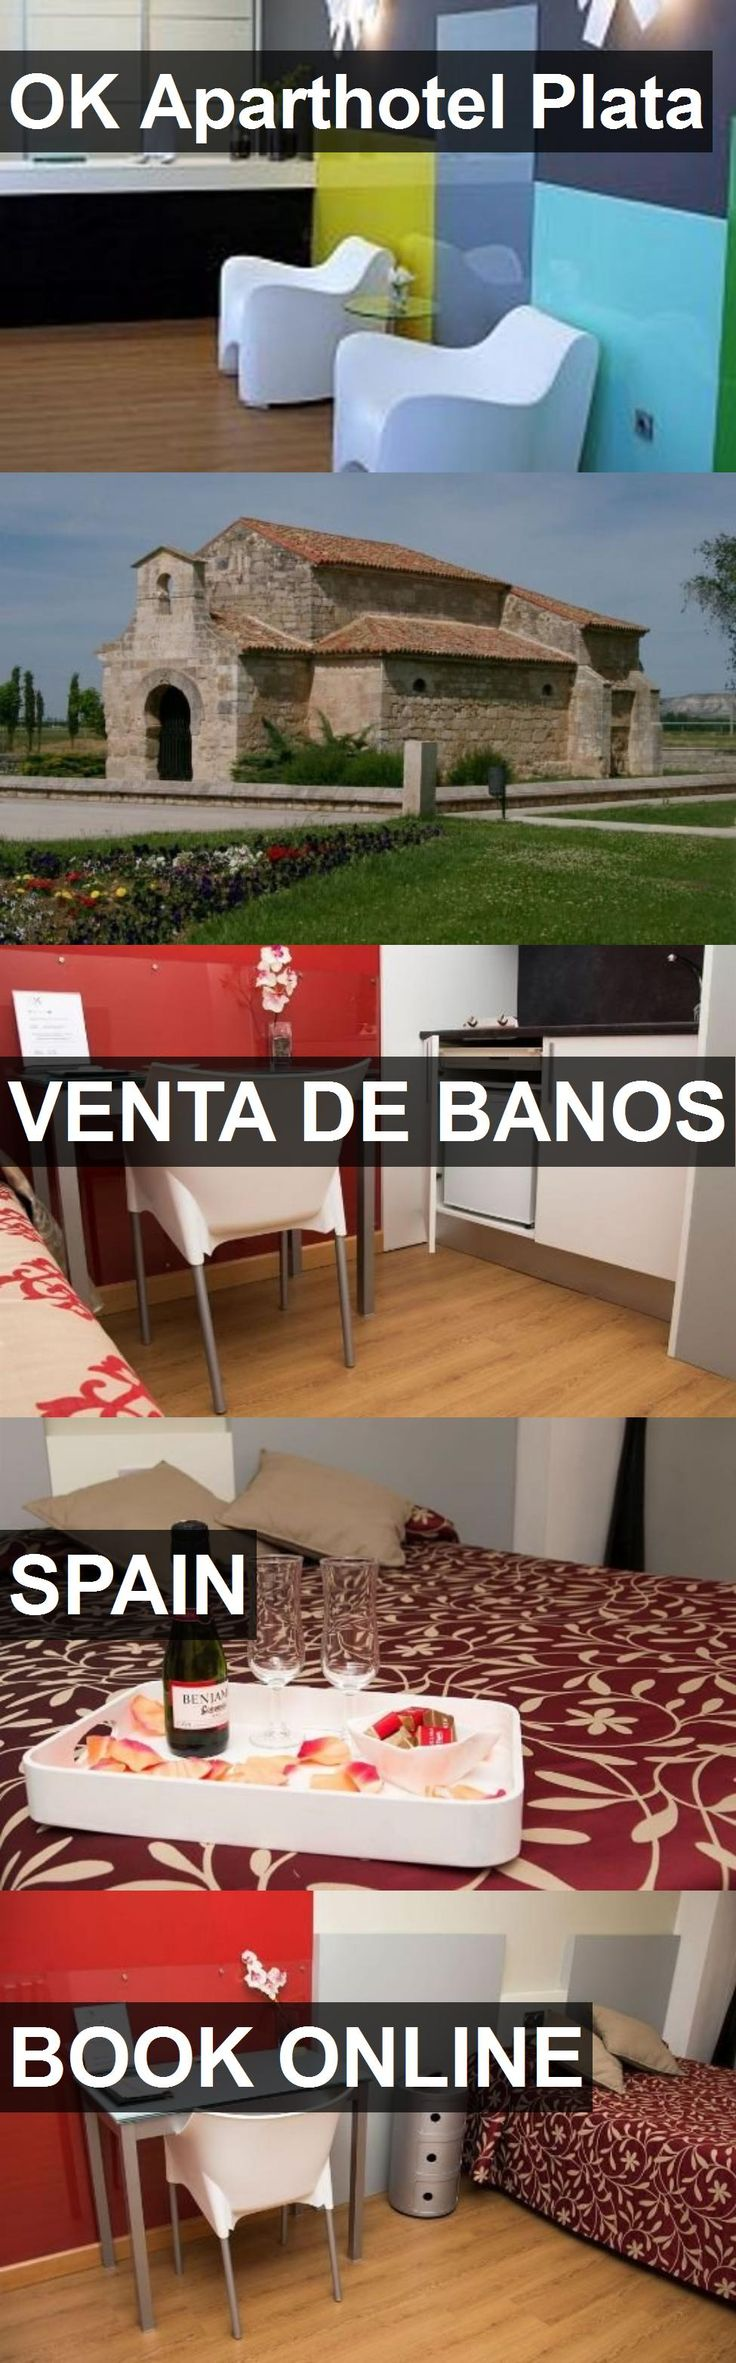 Hotel OK Aparthotel Plata in Venta de Banos, Spain. For more information, photos, reviews and best prices please follow the link. #Spain #VentadeBanos #hotel #travel #vacation